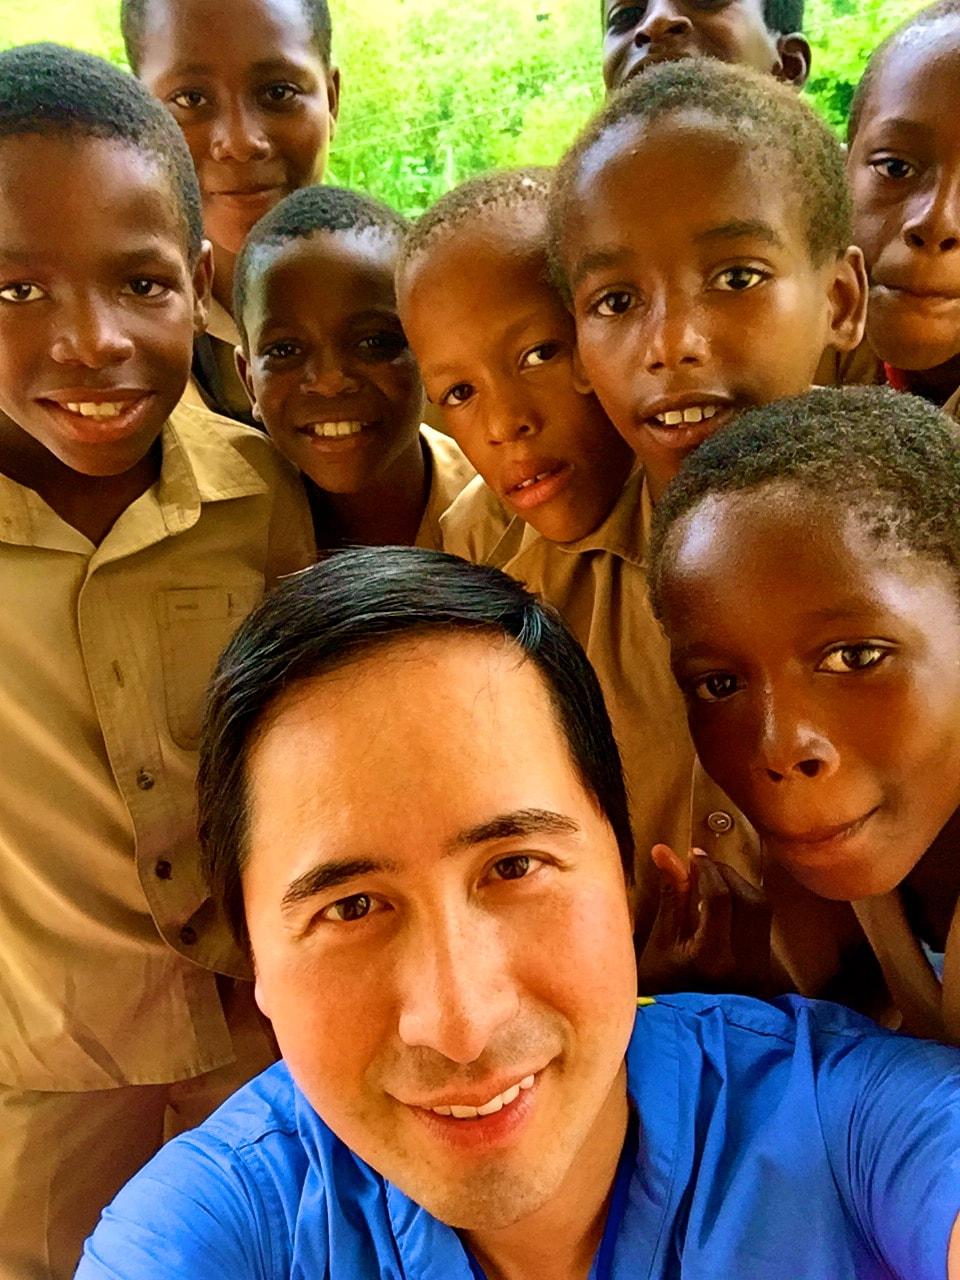 Dr. Cheng gives some children in Jamaica their first eye exam – and takes the children's first selfie.